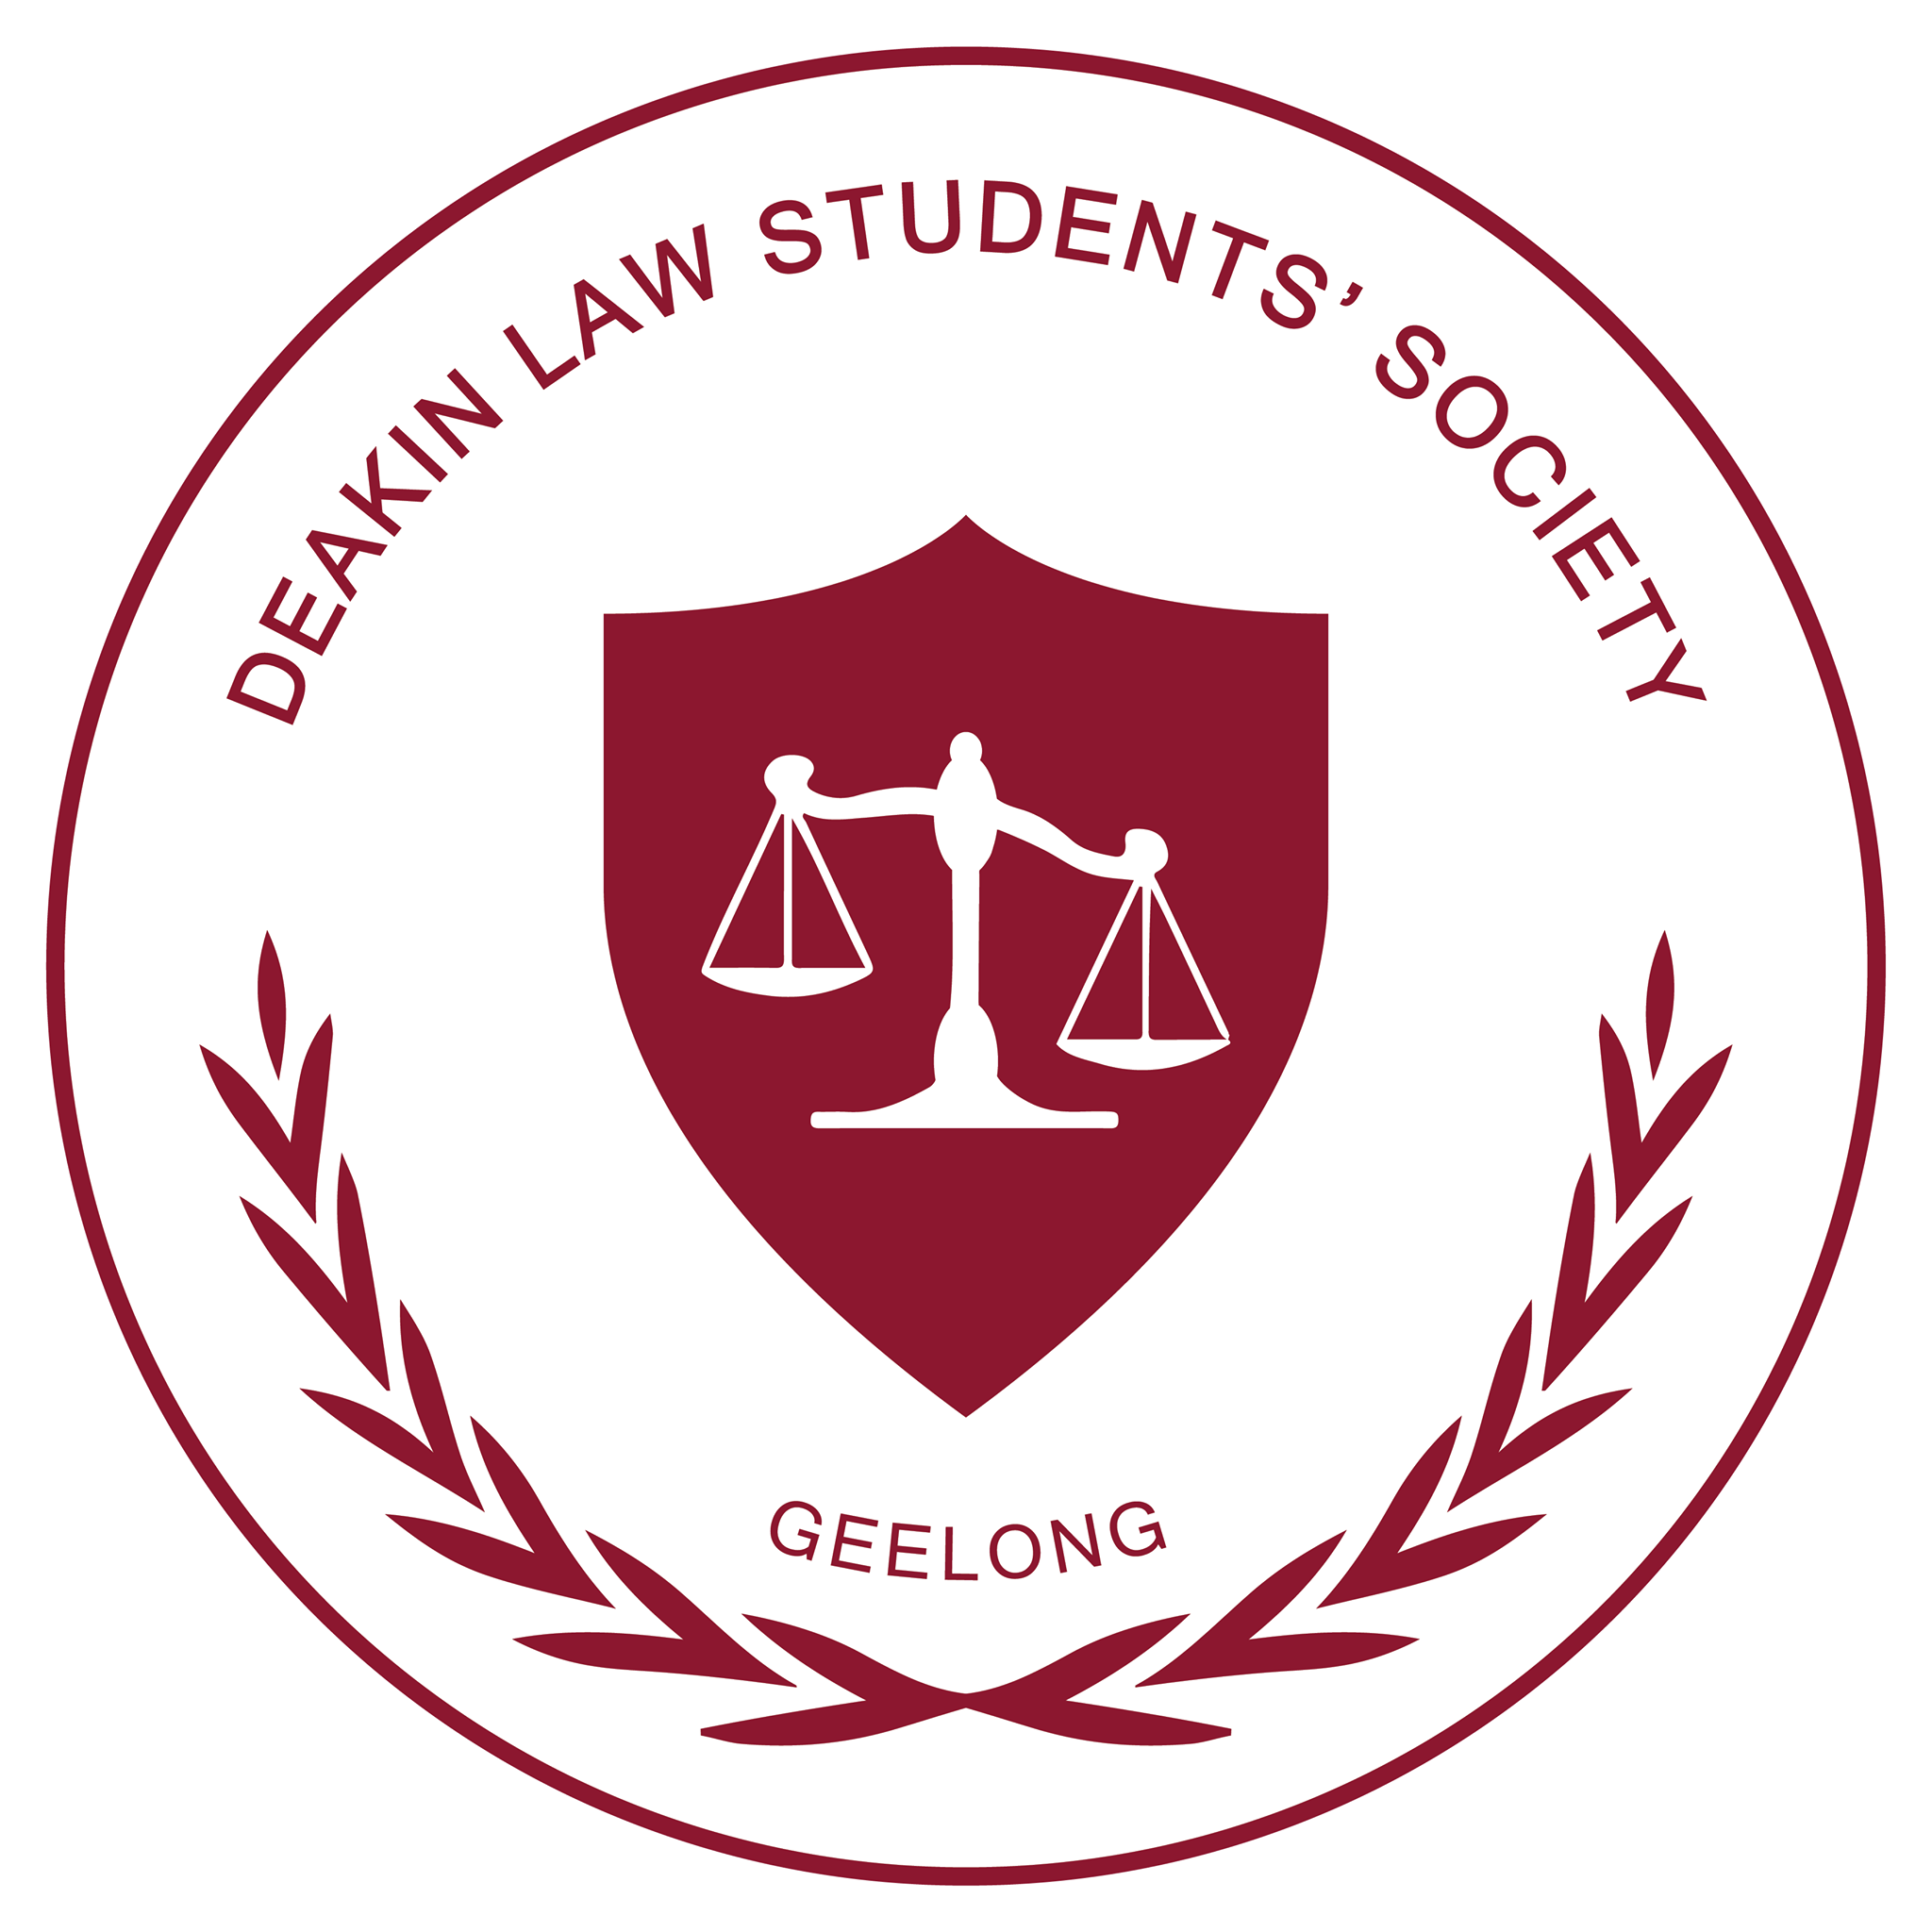 Deakin Law Students' Society Geelong